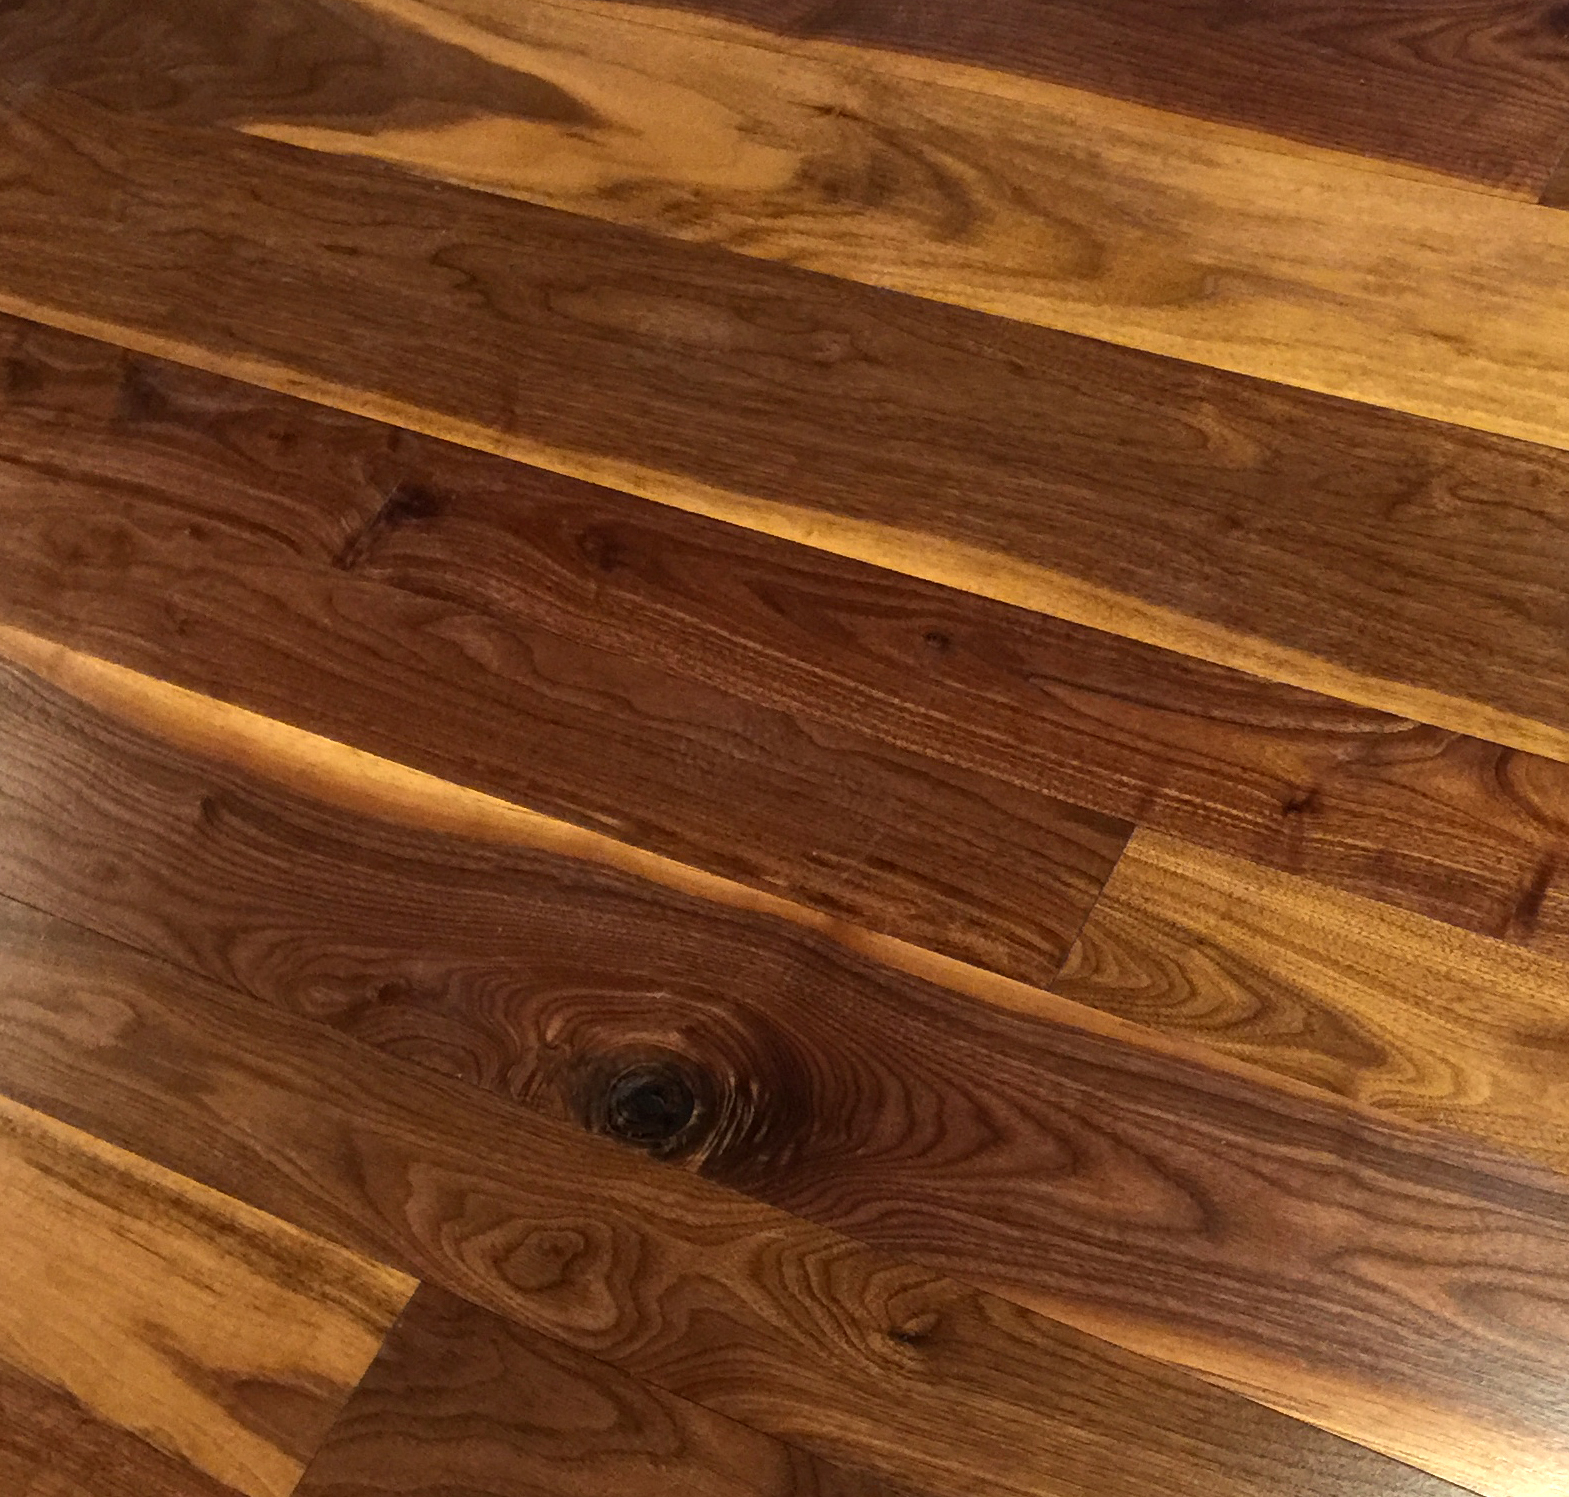 Wide Plank Walnut Hardwood Flooring Part - 36: An Example Of Classic Plank Walnut Flooring With A Tung Oil Finish